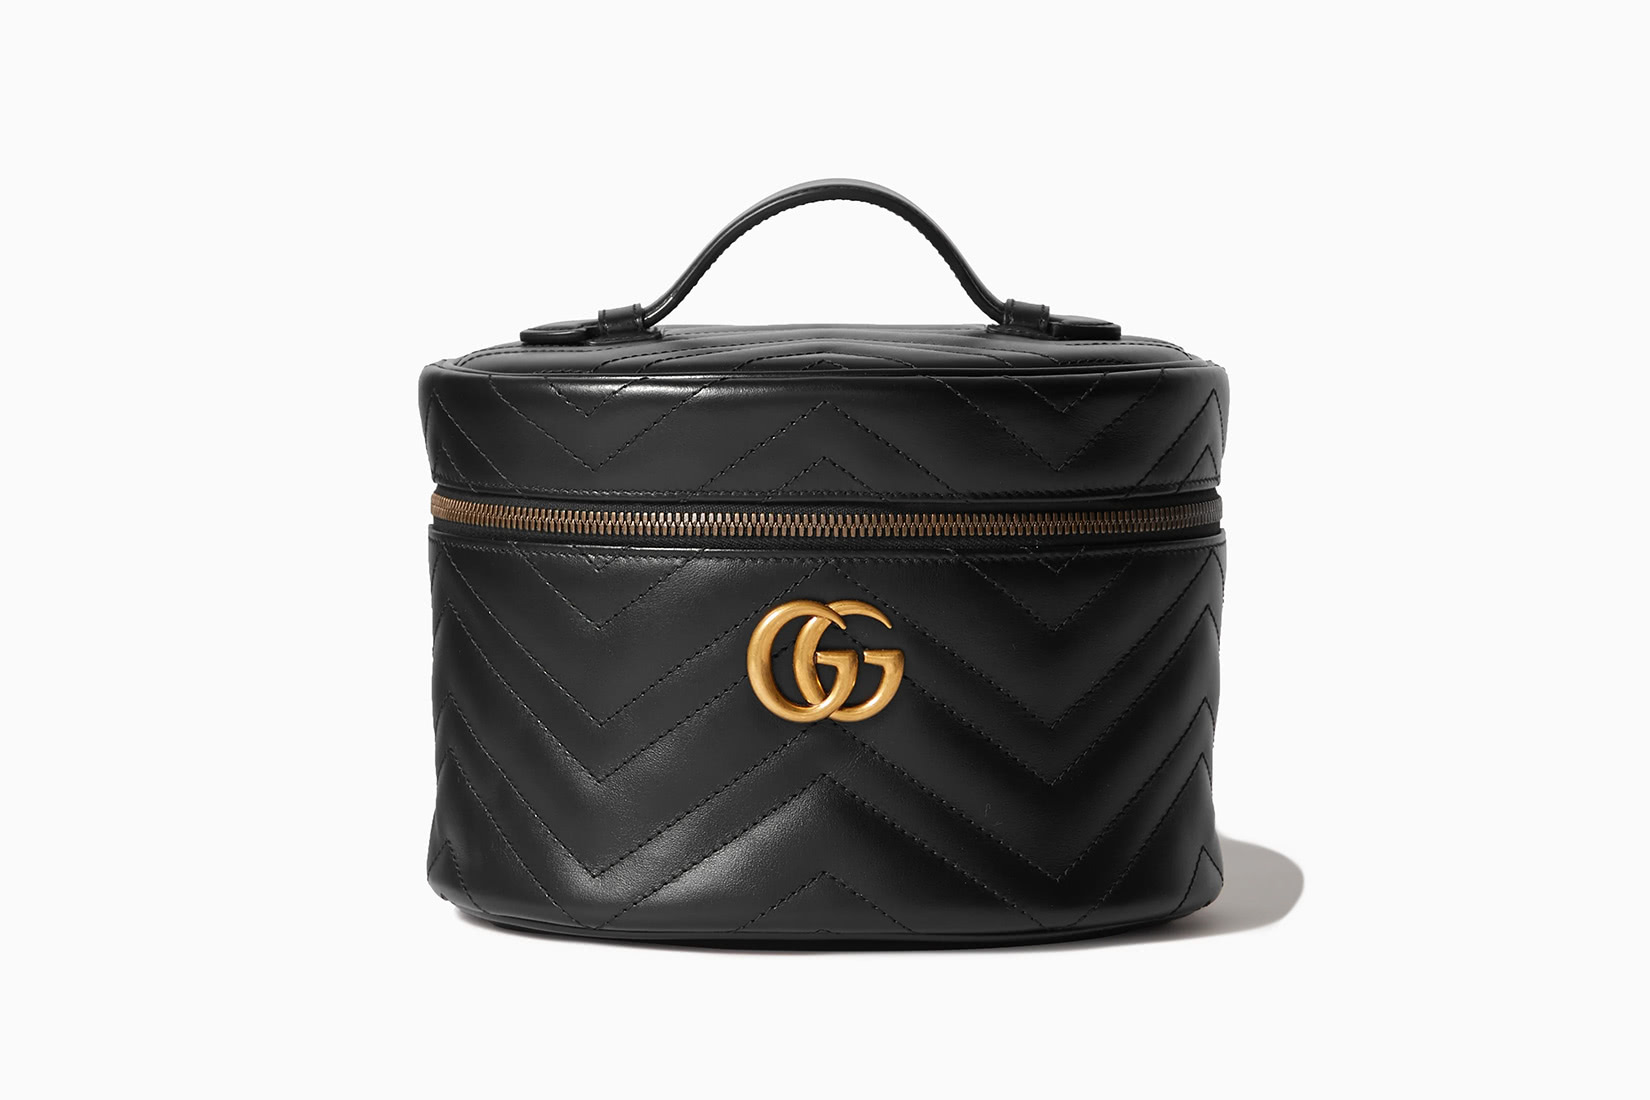 best toiletry bag women expensive gucci - Luxe Digital